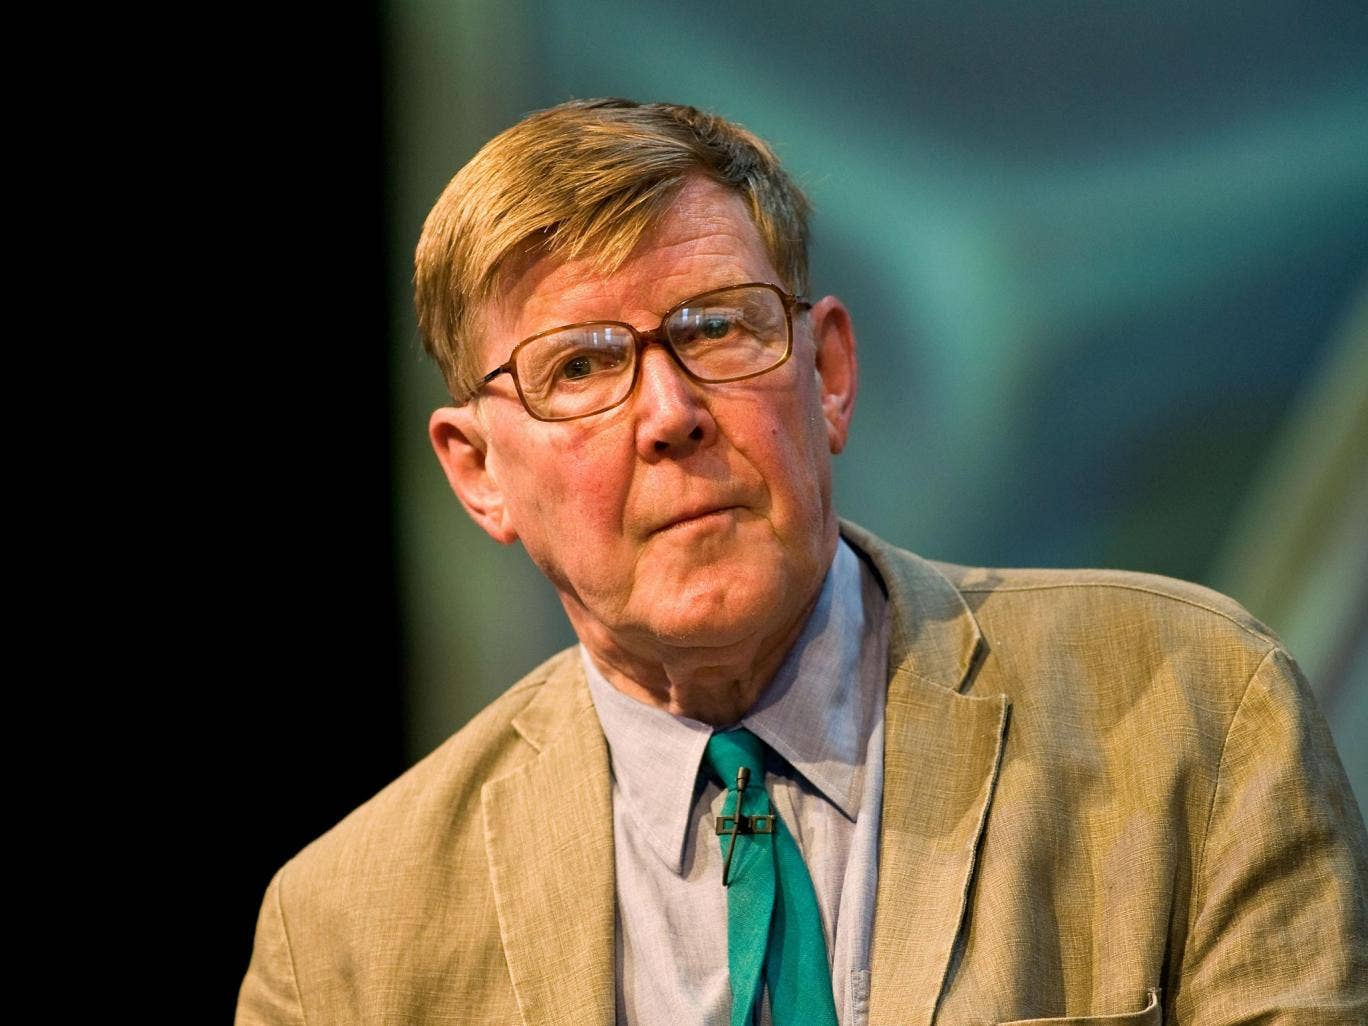 Alan Bennett criticised the lack of fairness in British society encapsulated by the private school system